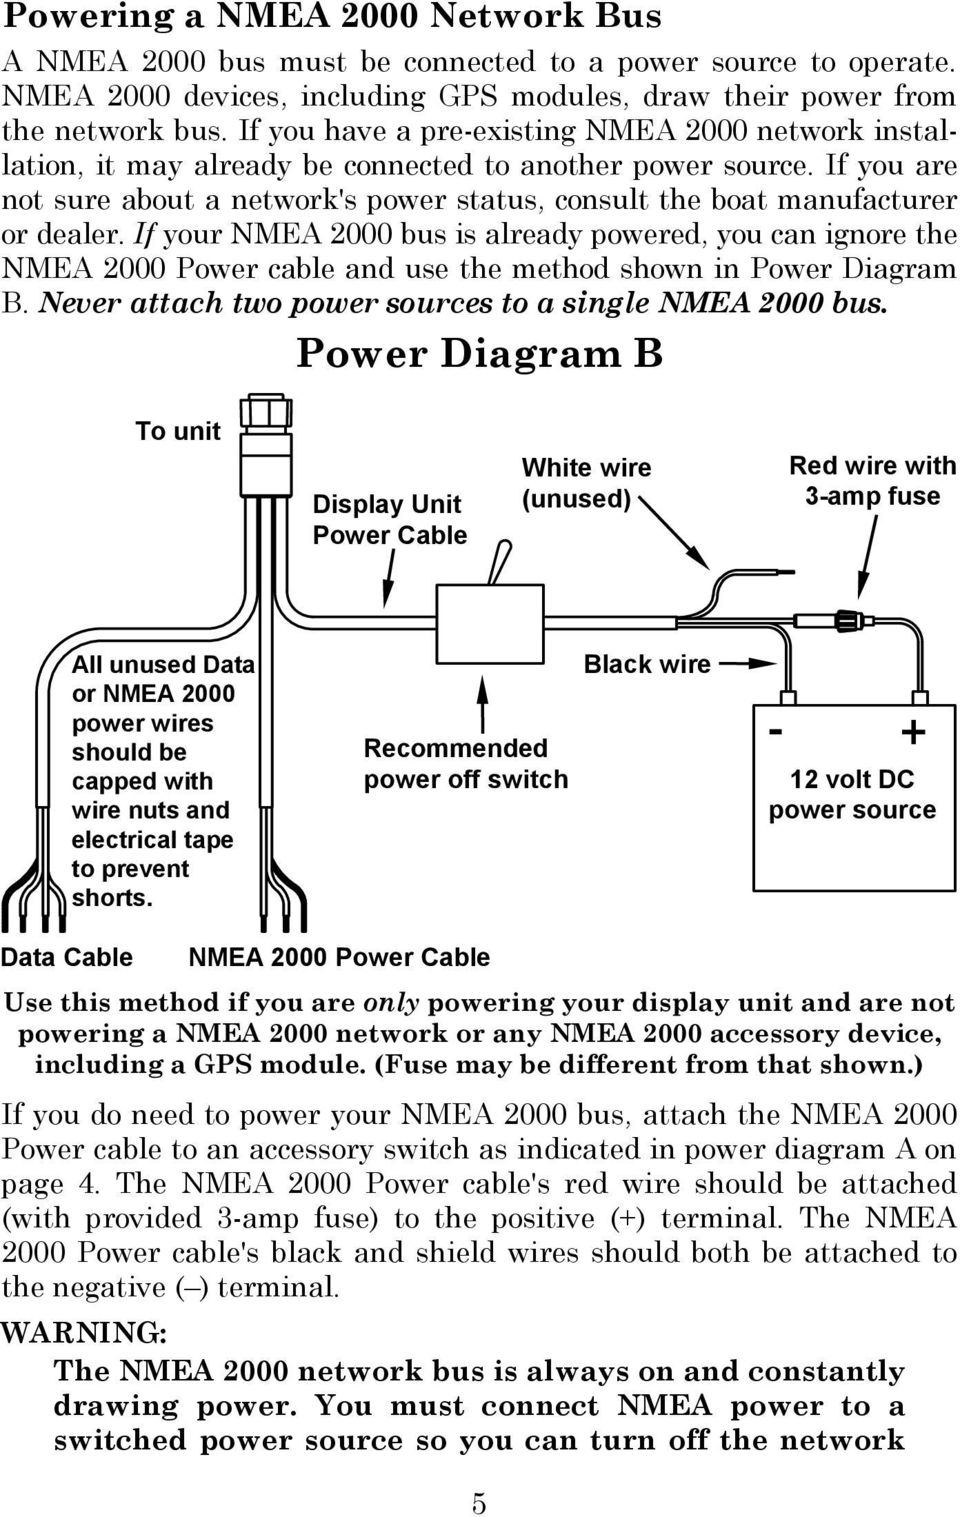 Lms 480m 480df Globalmap 4800m Pdf Wire That Goes Through The Switch And Cap Off Unused Attached If You Are Not Sure About A Networks Power Status Consult Boat Manufacturer Or